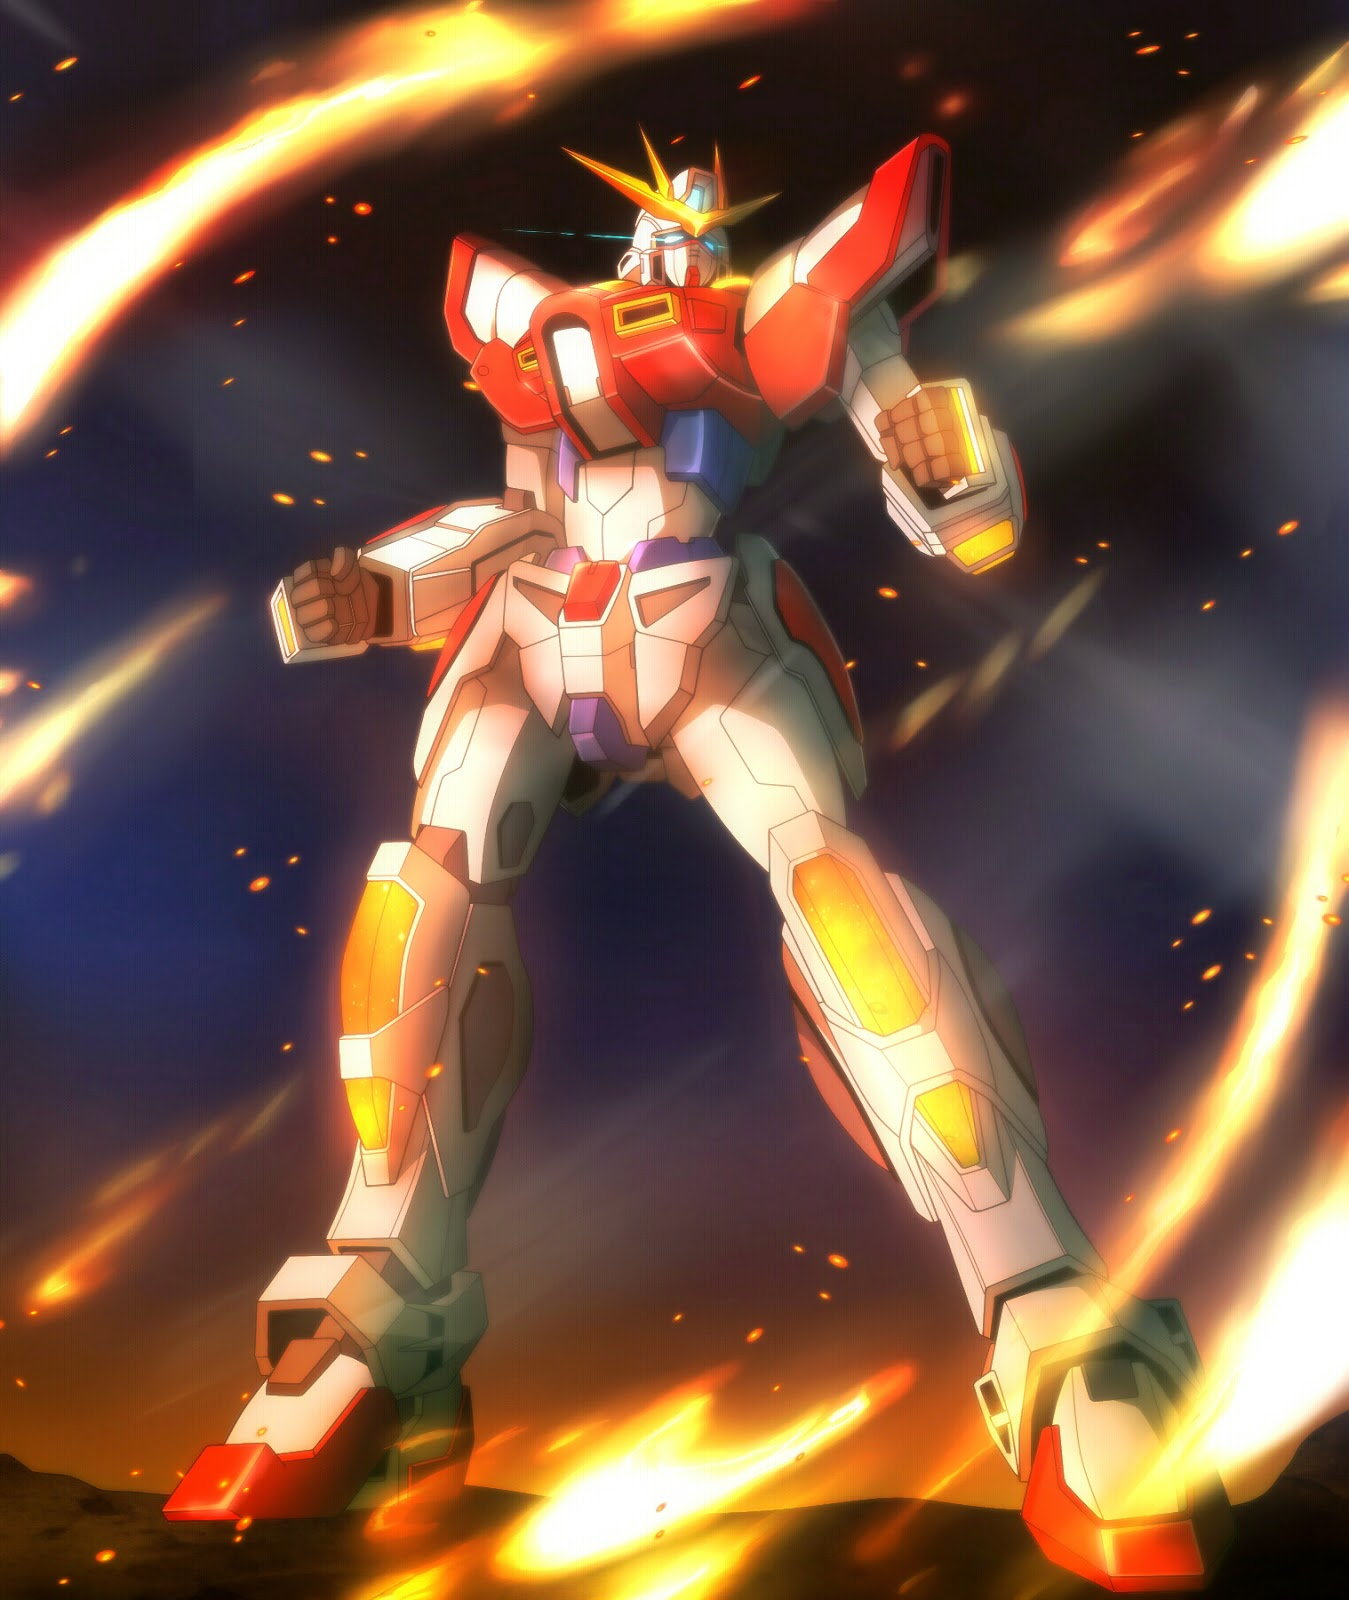 Gundam Build Fighters Try Build Burning Gundam Wallpaper Gundam Build Fighters